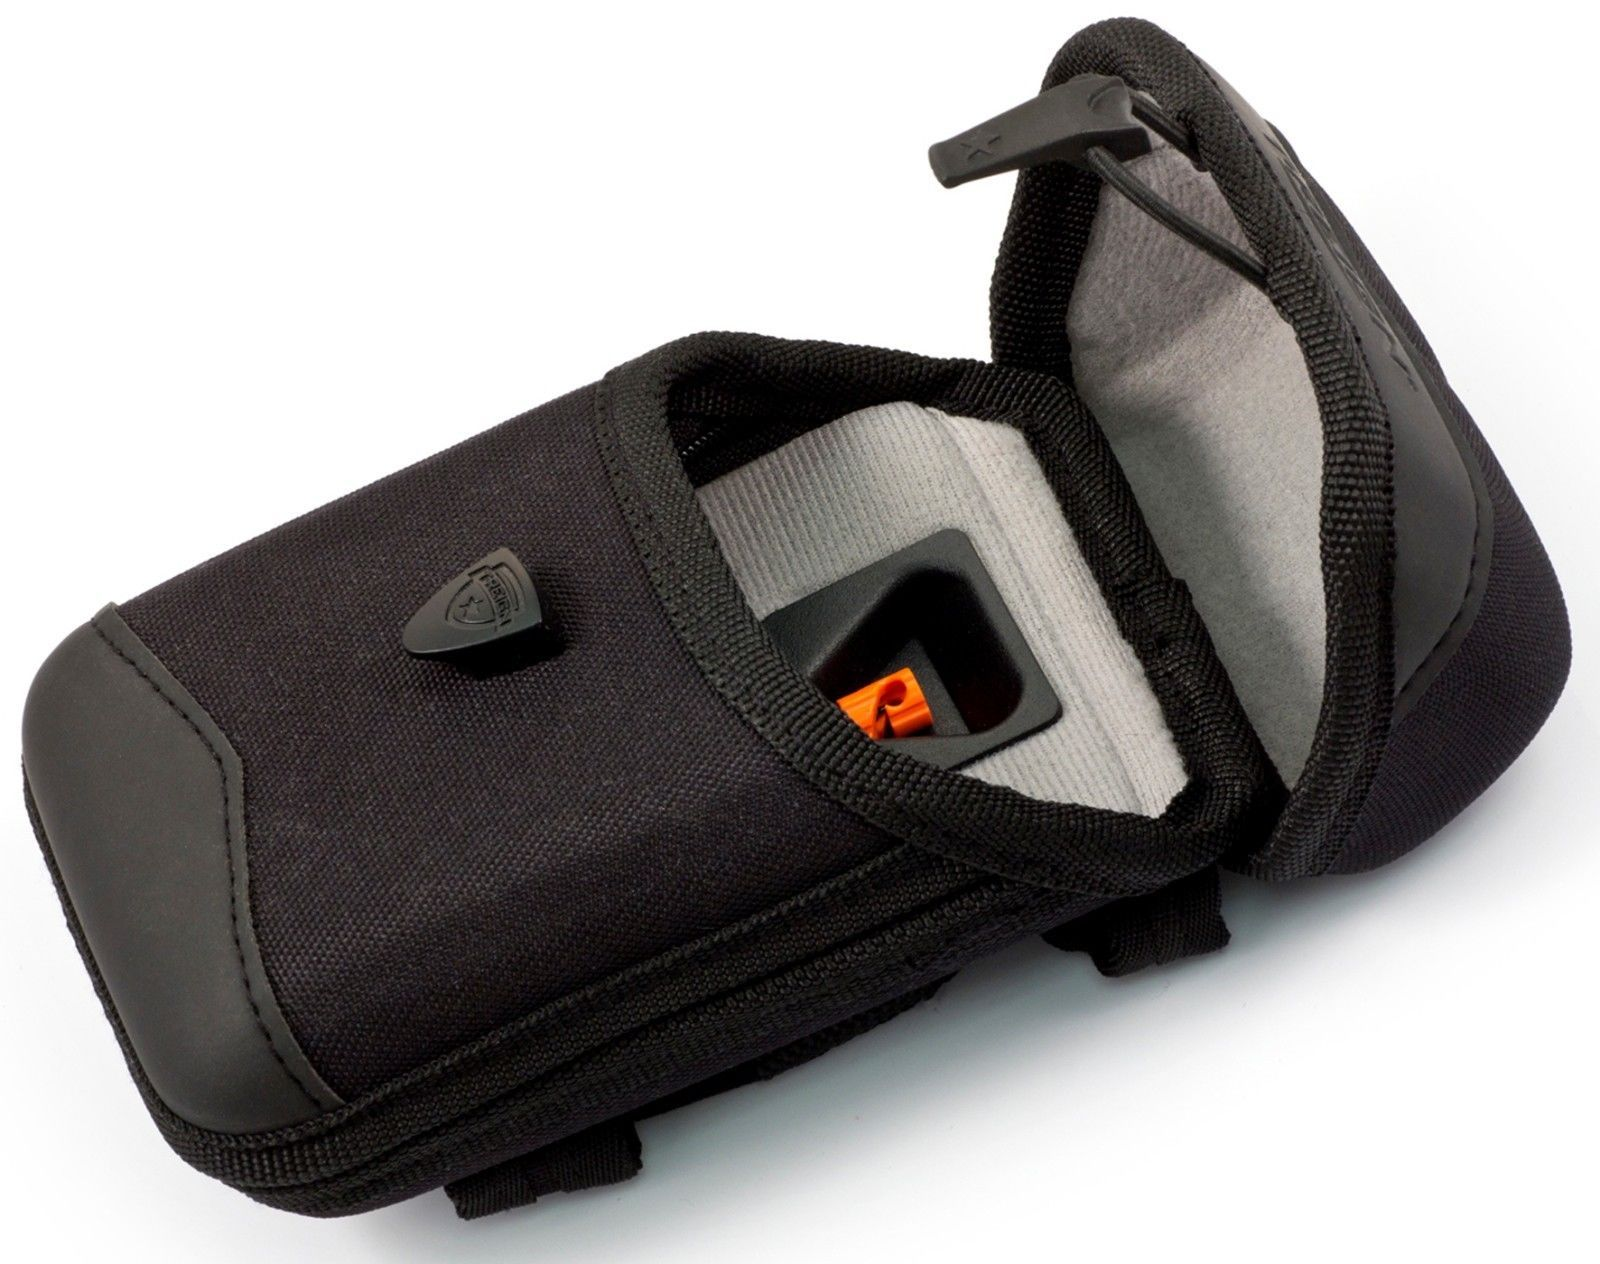 T-Reign Cases - Retractable Protection Case/Holster/Sheath - Tool Holder - Black